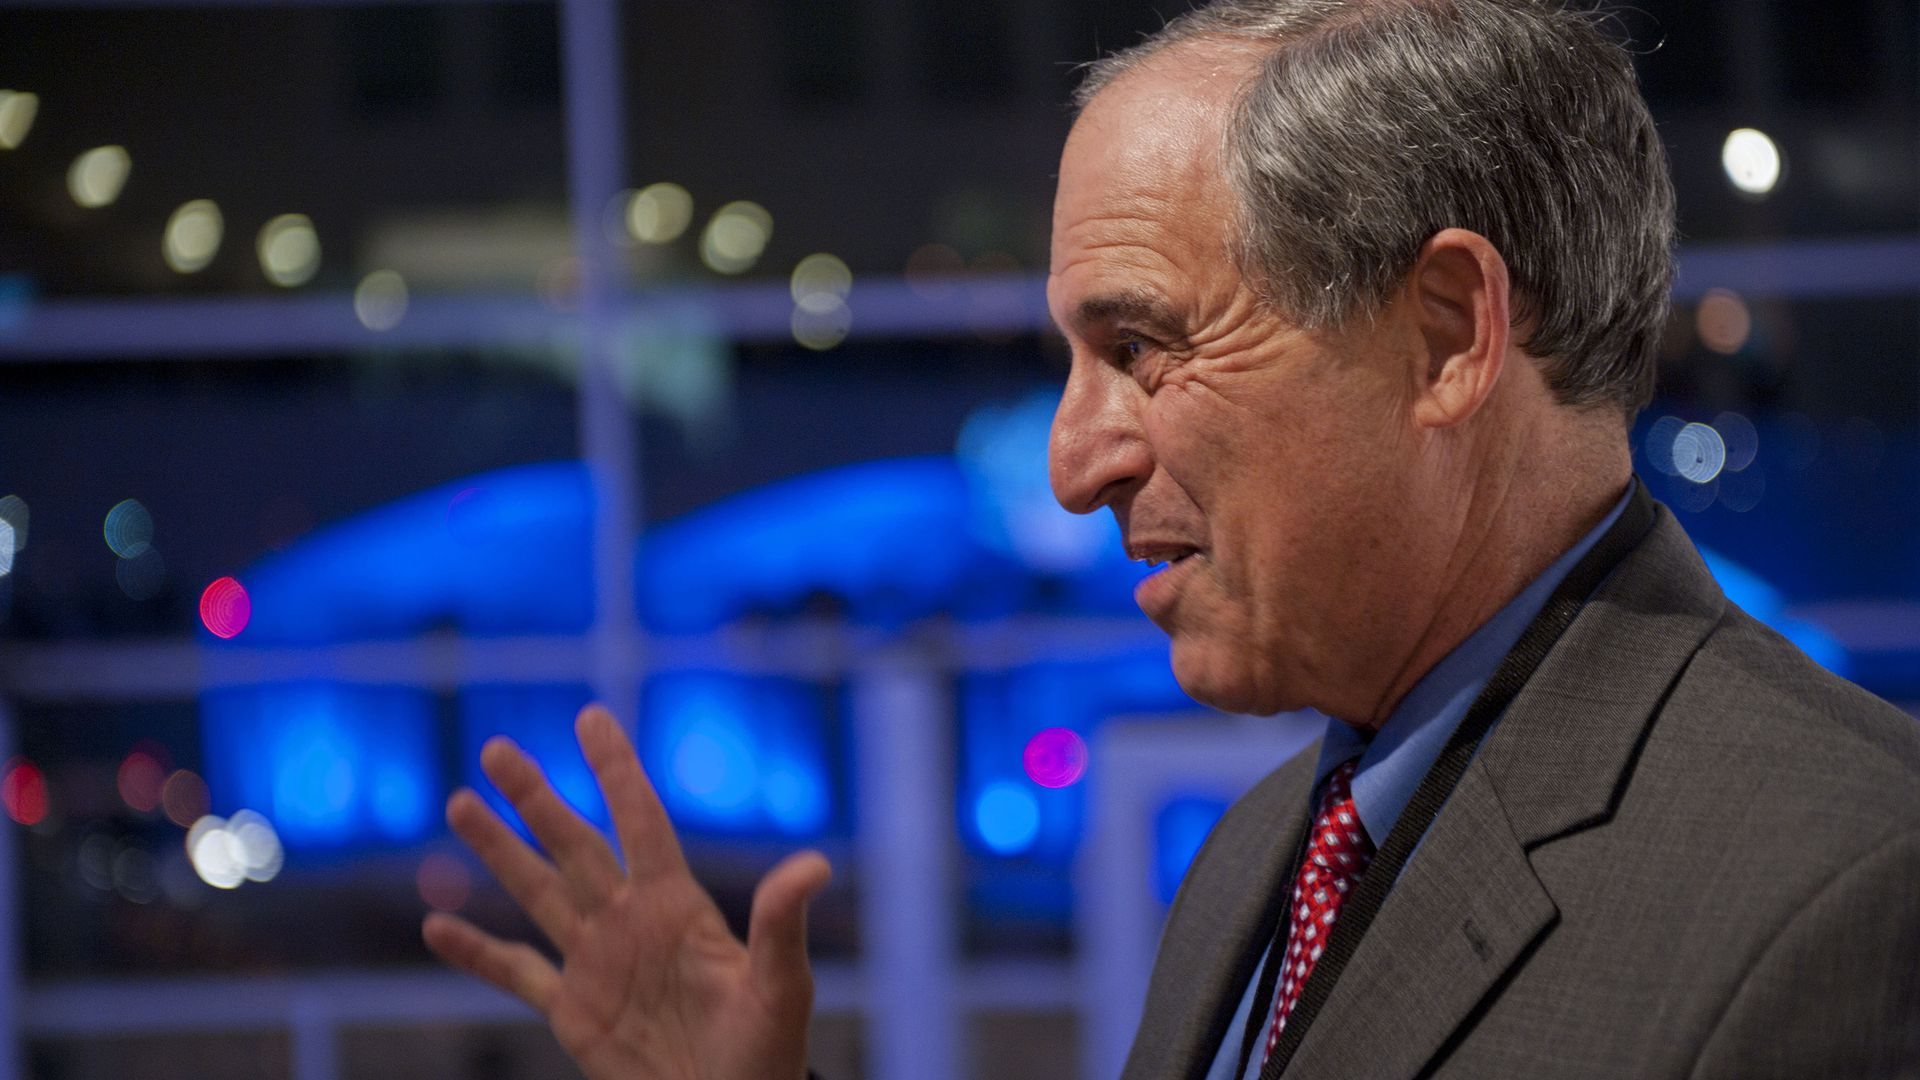 Lanny Davis speaks at an event